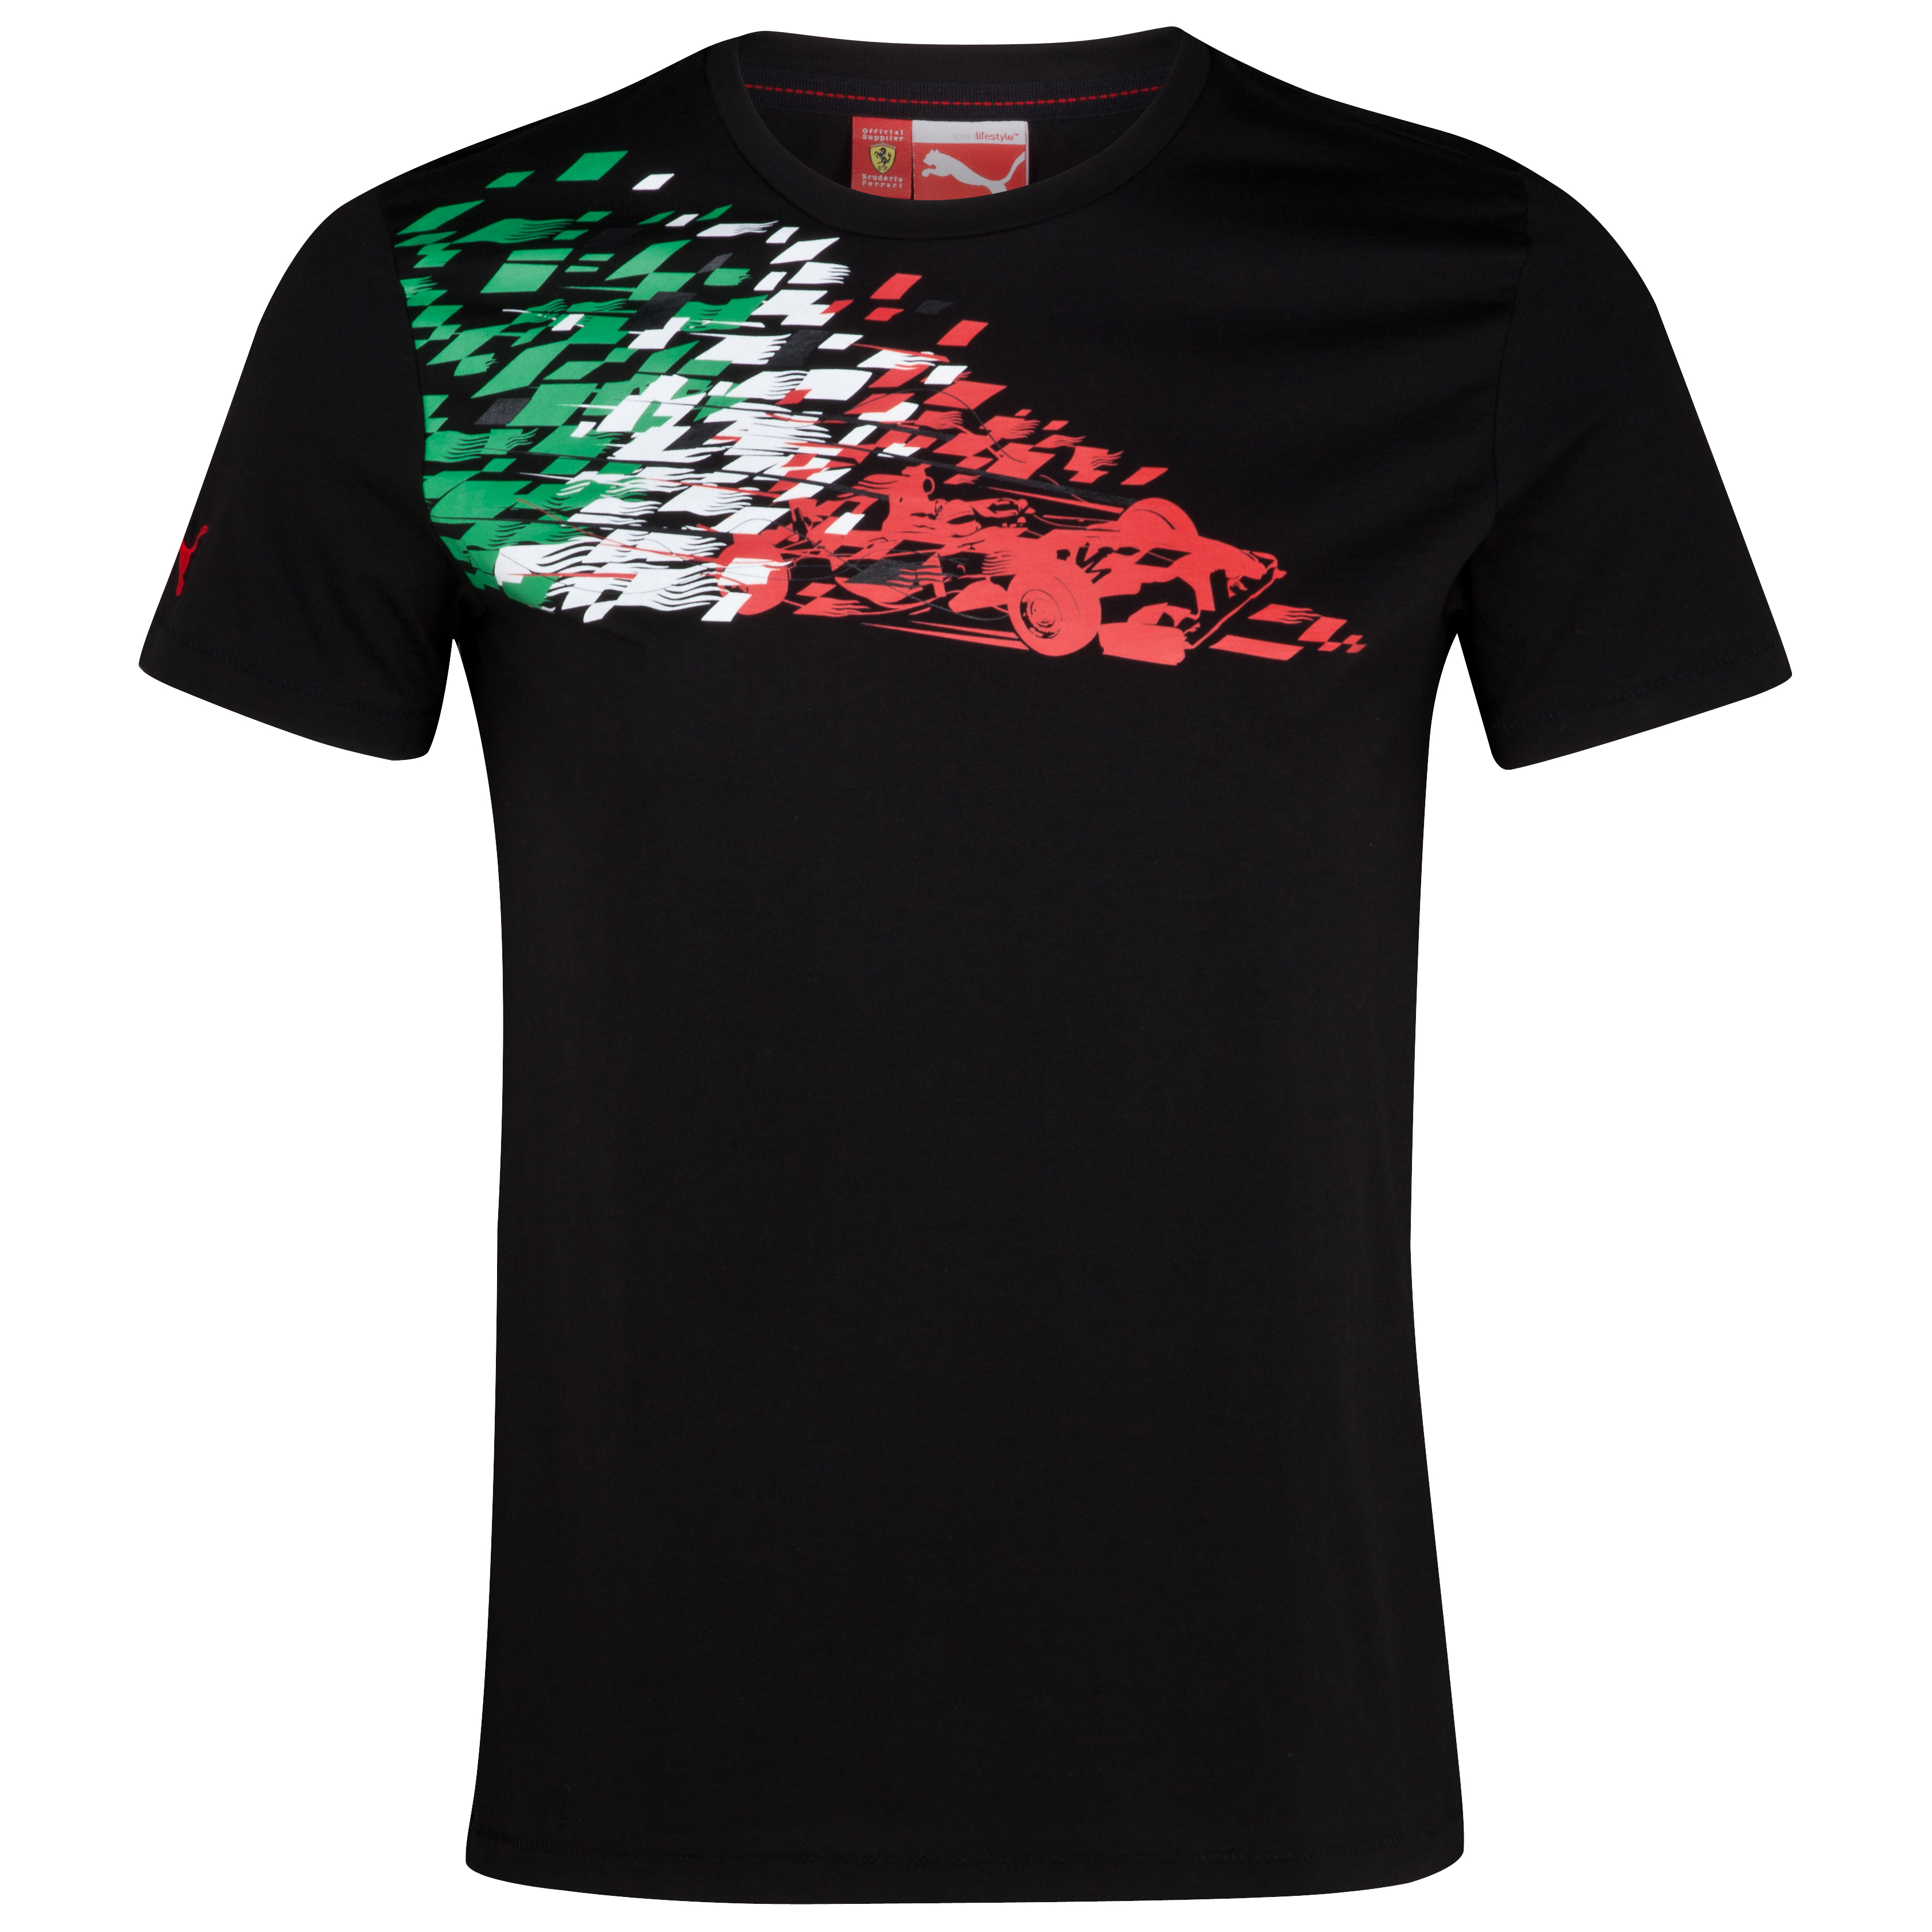 Scuderia Ferrari Graphic T-Shirt - Black